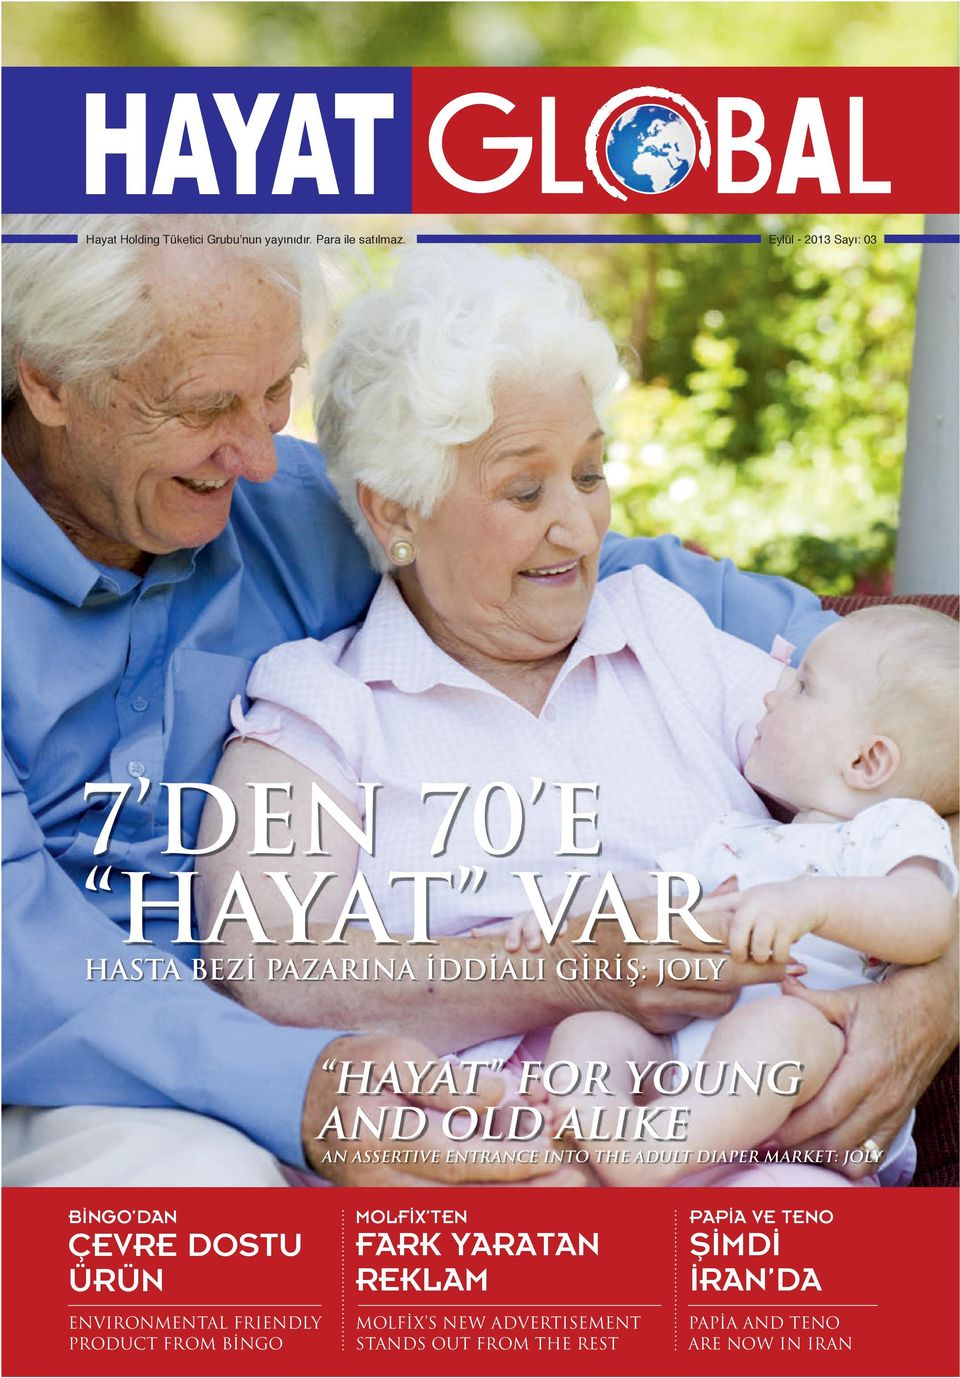 ve teno ÇEVRE DOSTU ÜRÜN HAYAT FOR YOUNG AND OLD ALIKE AN ASSERTIVE ENTRANCE INTO THE ADULT DIAPER MARKET: